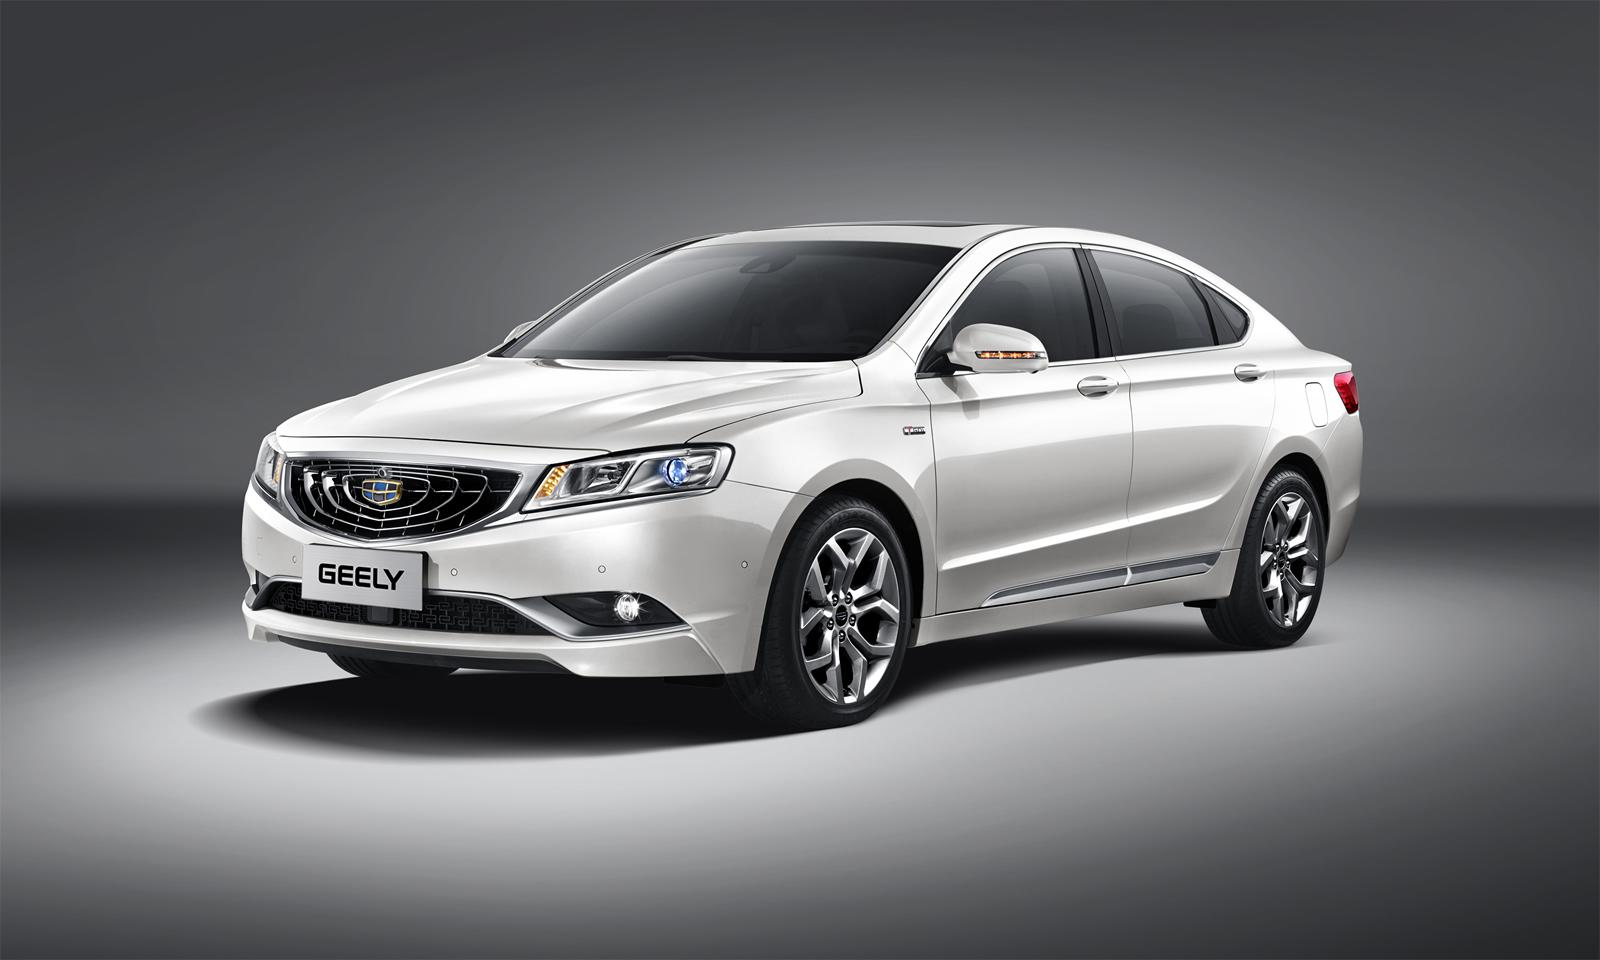 Geely GC9 Named Car Of The Year 2016 In China - PakWheels Blog